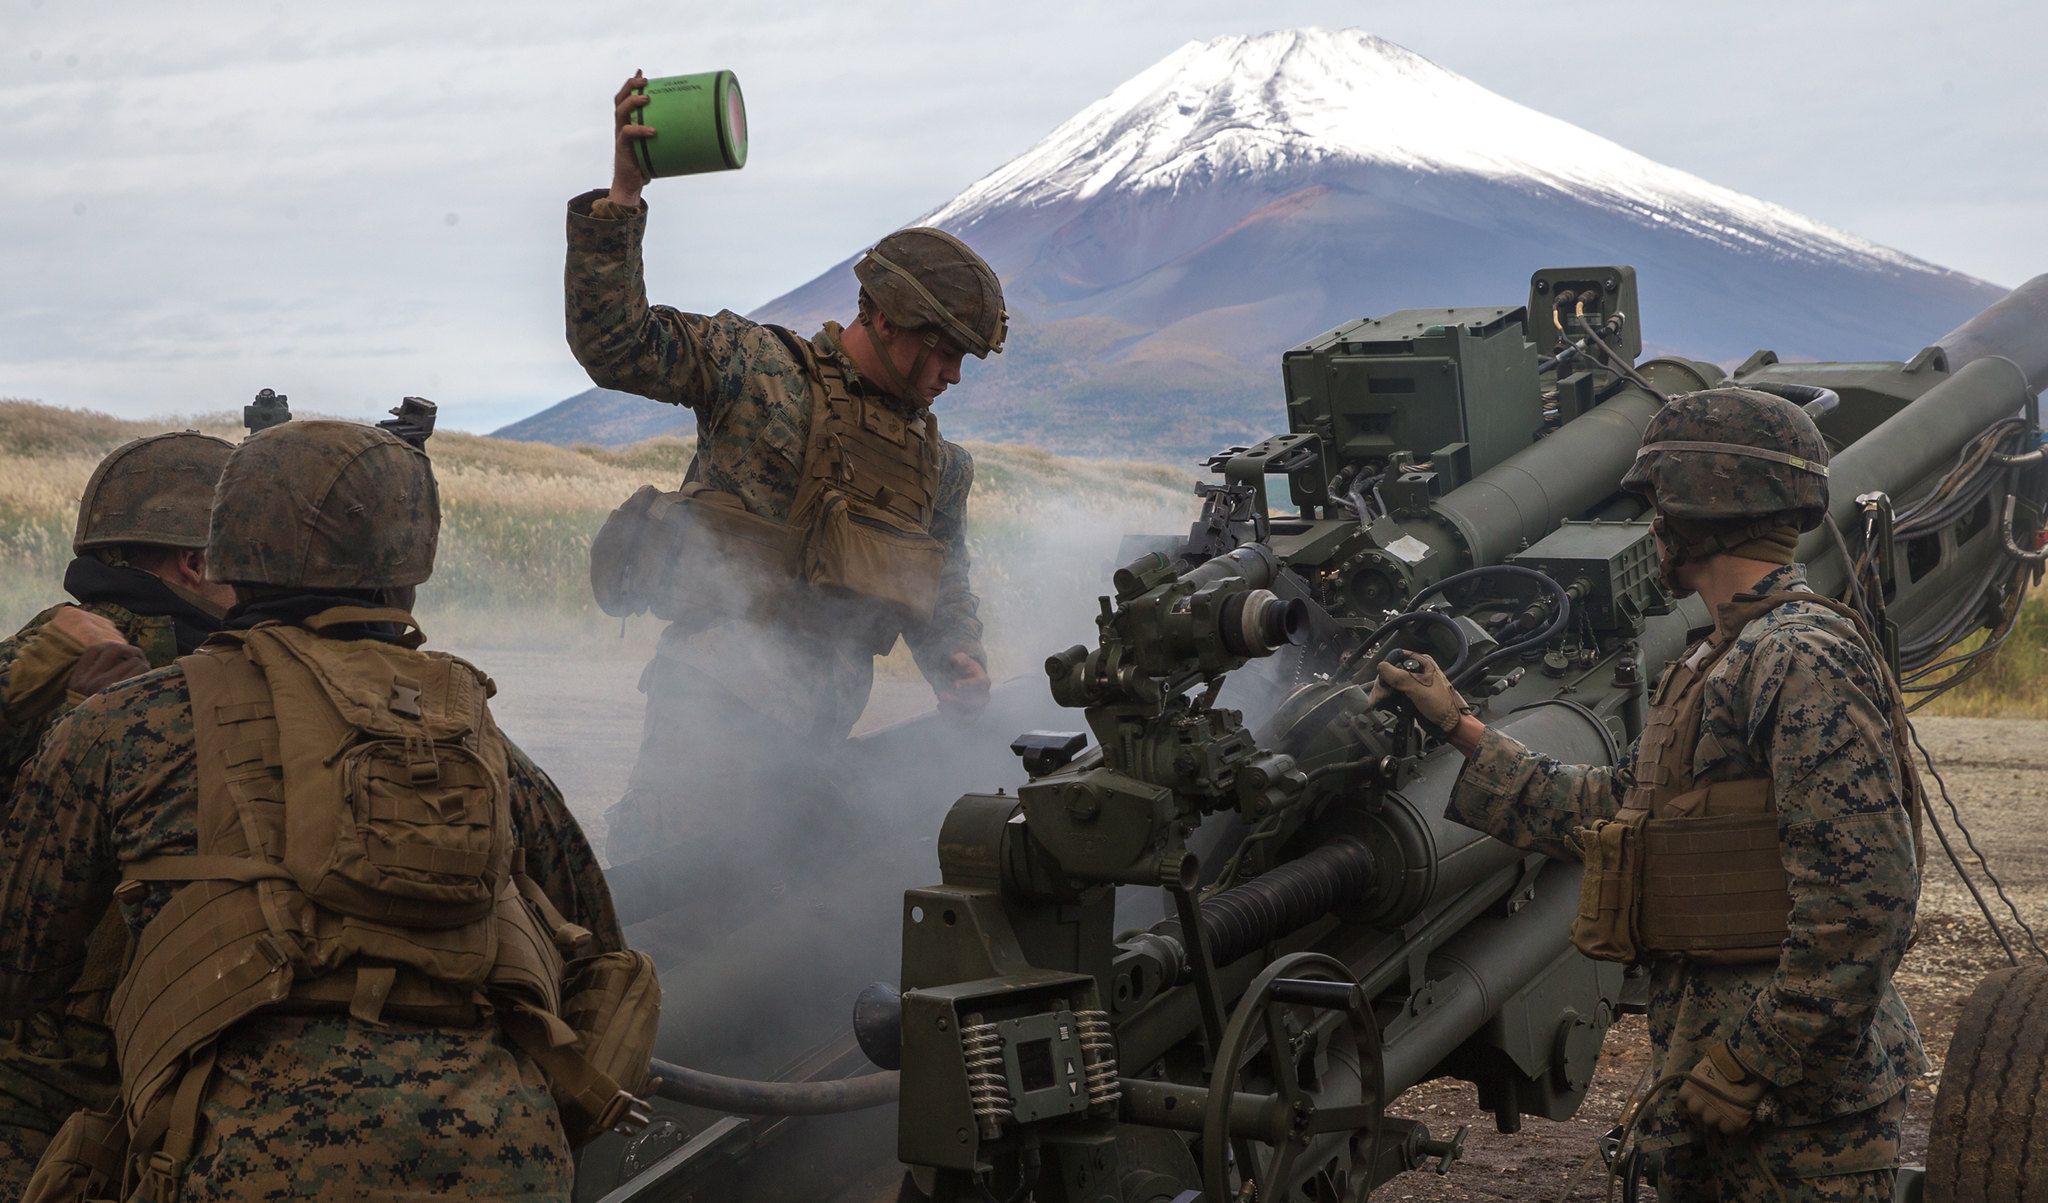 U.S. Marines prepare to fire an M777A2 155mm Howitzer as a part of the Artillery Relocation Training Program 20.3 at Combined Arms Training Center, Camp Fuji, Japan, Oct. 20, 2020. (Cpl. Savannah Mesimer/Marine Corps)